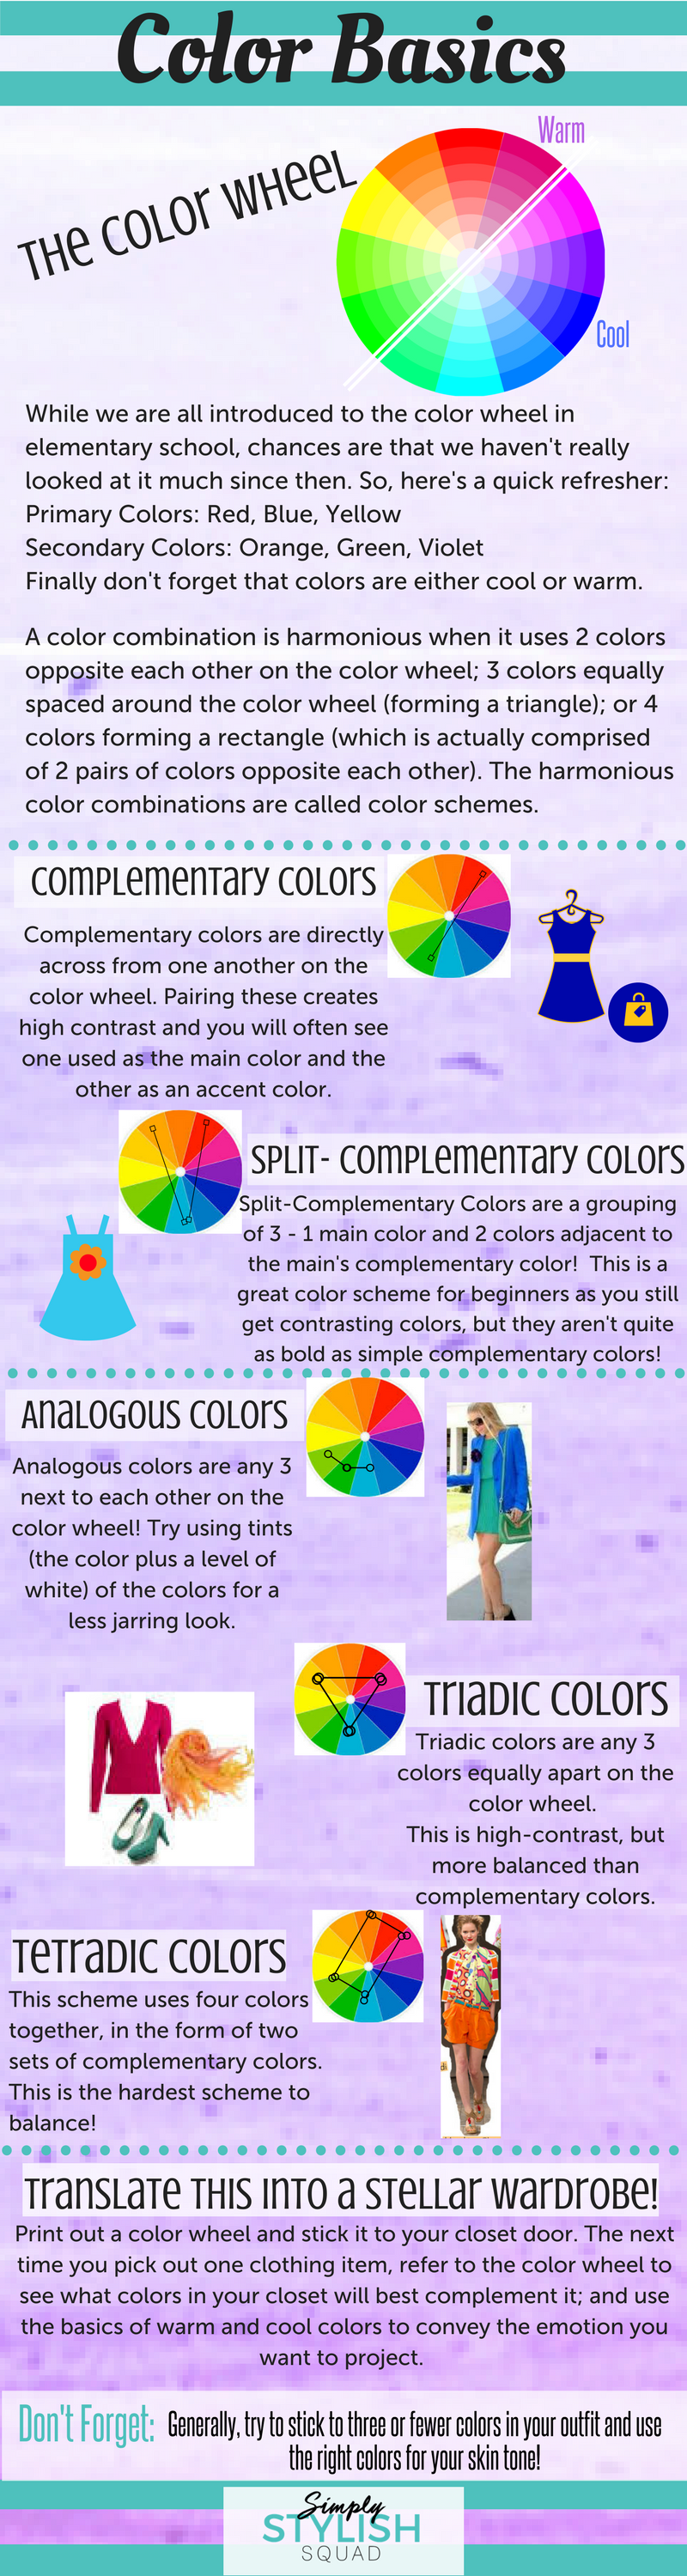 Color Basics all about color theory - direct sales member articlekate stotish